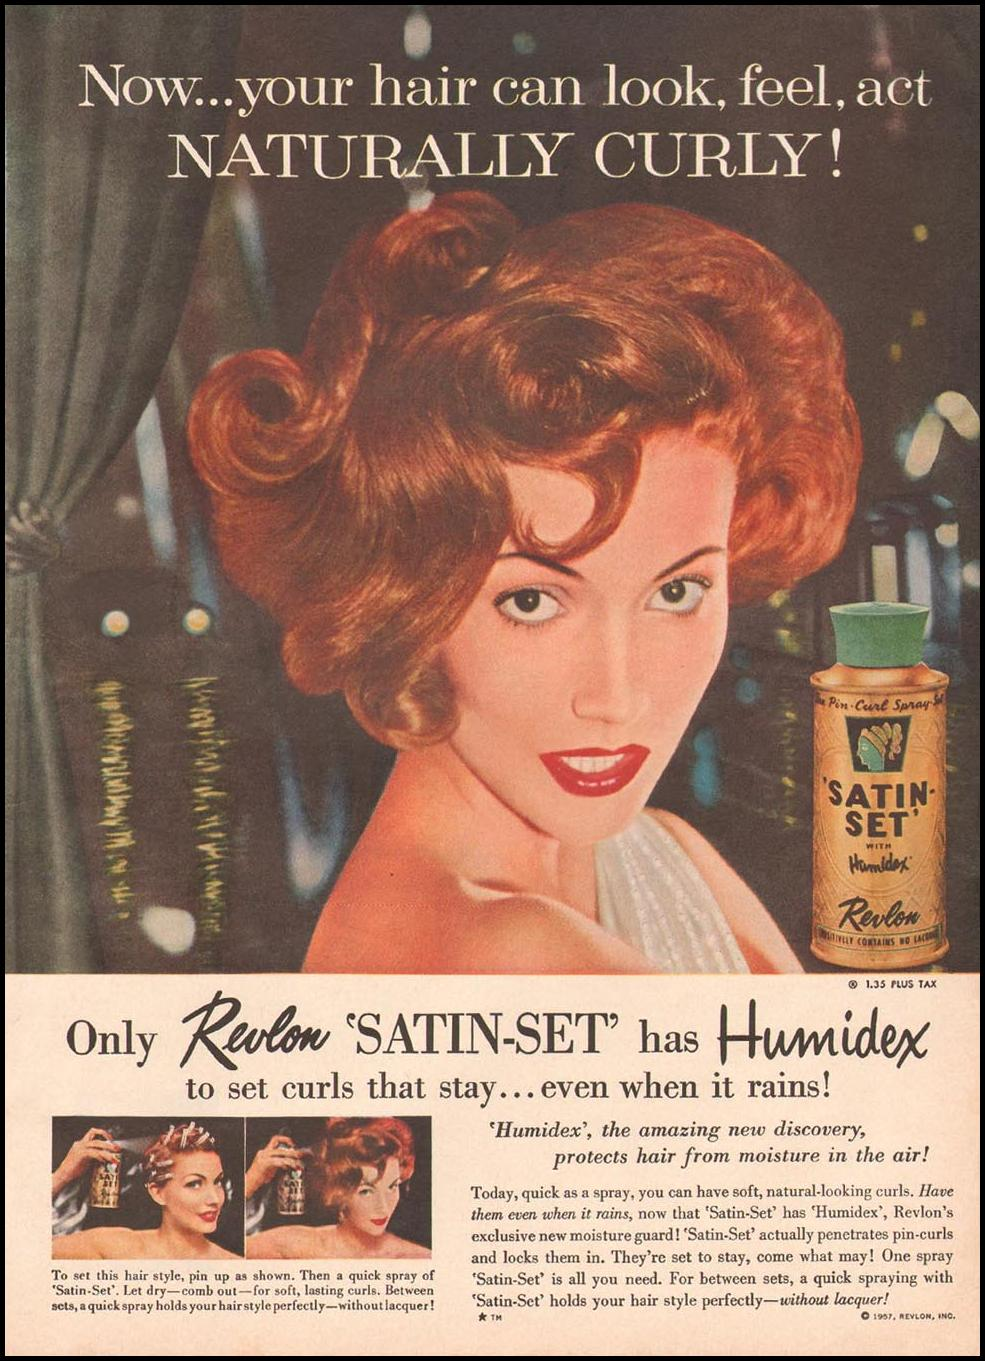 REVLON SATIN-SET HAIR SPRAY WITH HUMIDEX GOOD HOUSEKEEPING 05/01/1957